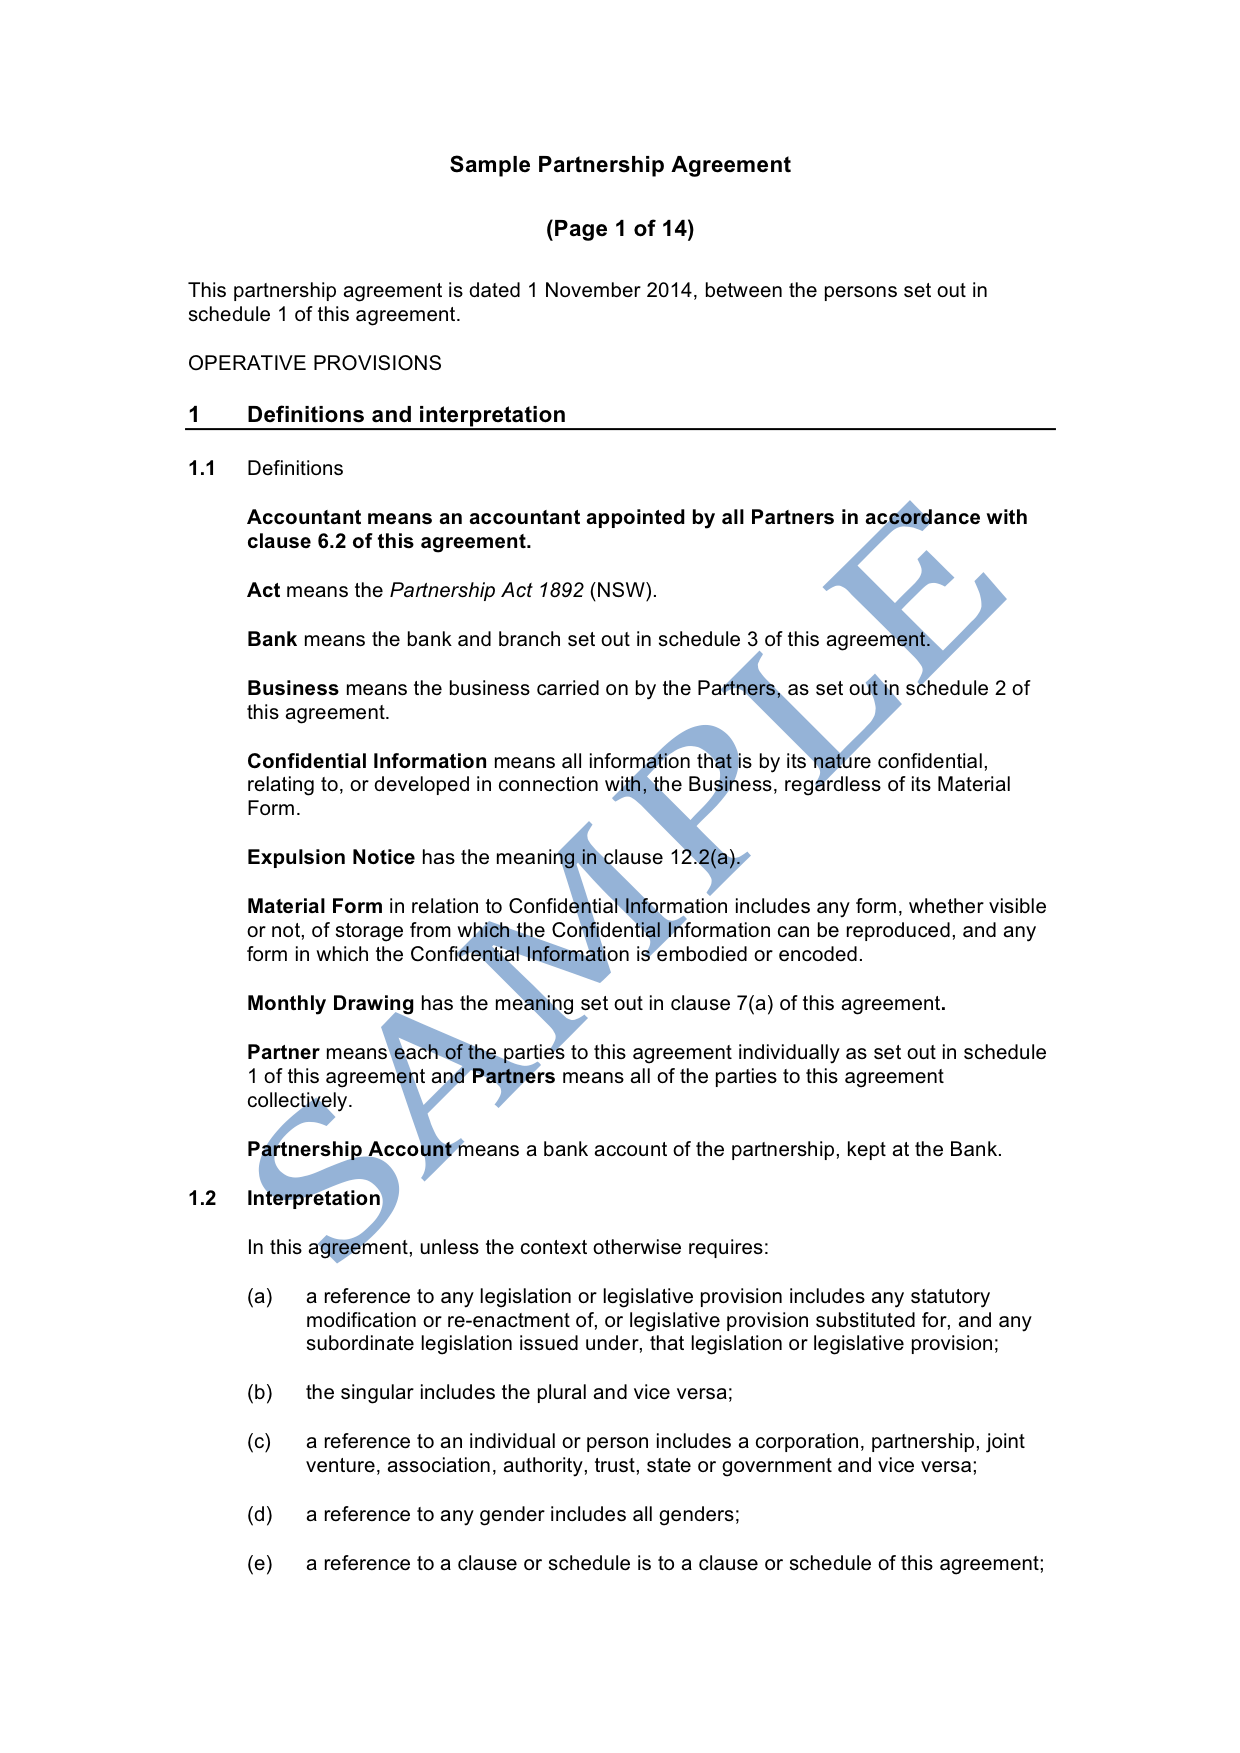 Doc12401754 Trade Agreement Sample Doc823526 Trade Agreement – Trading Agreement Template